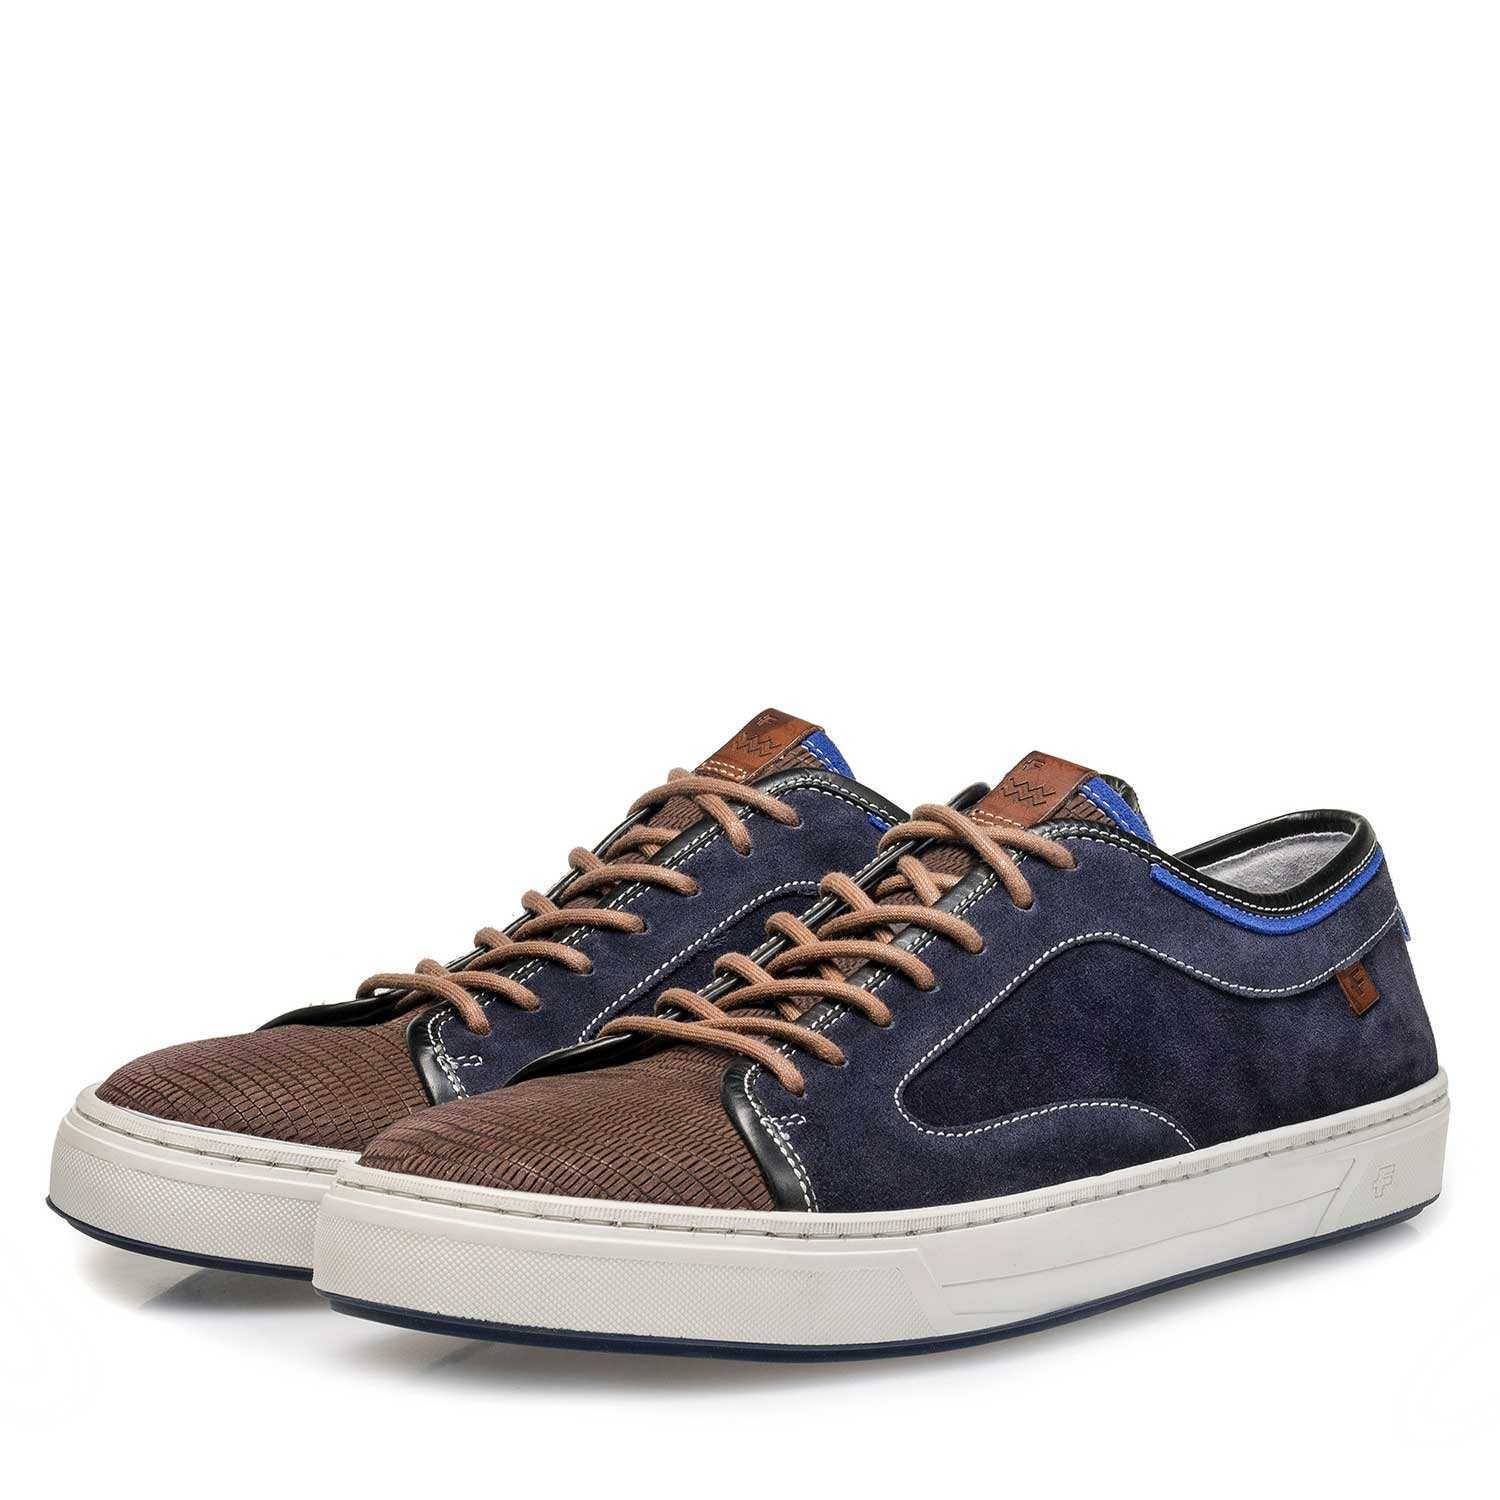 13466/10 - Dark grey & blue lizard print suede leather sneaker